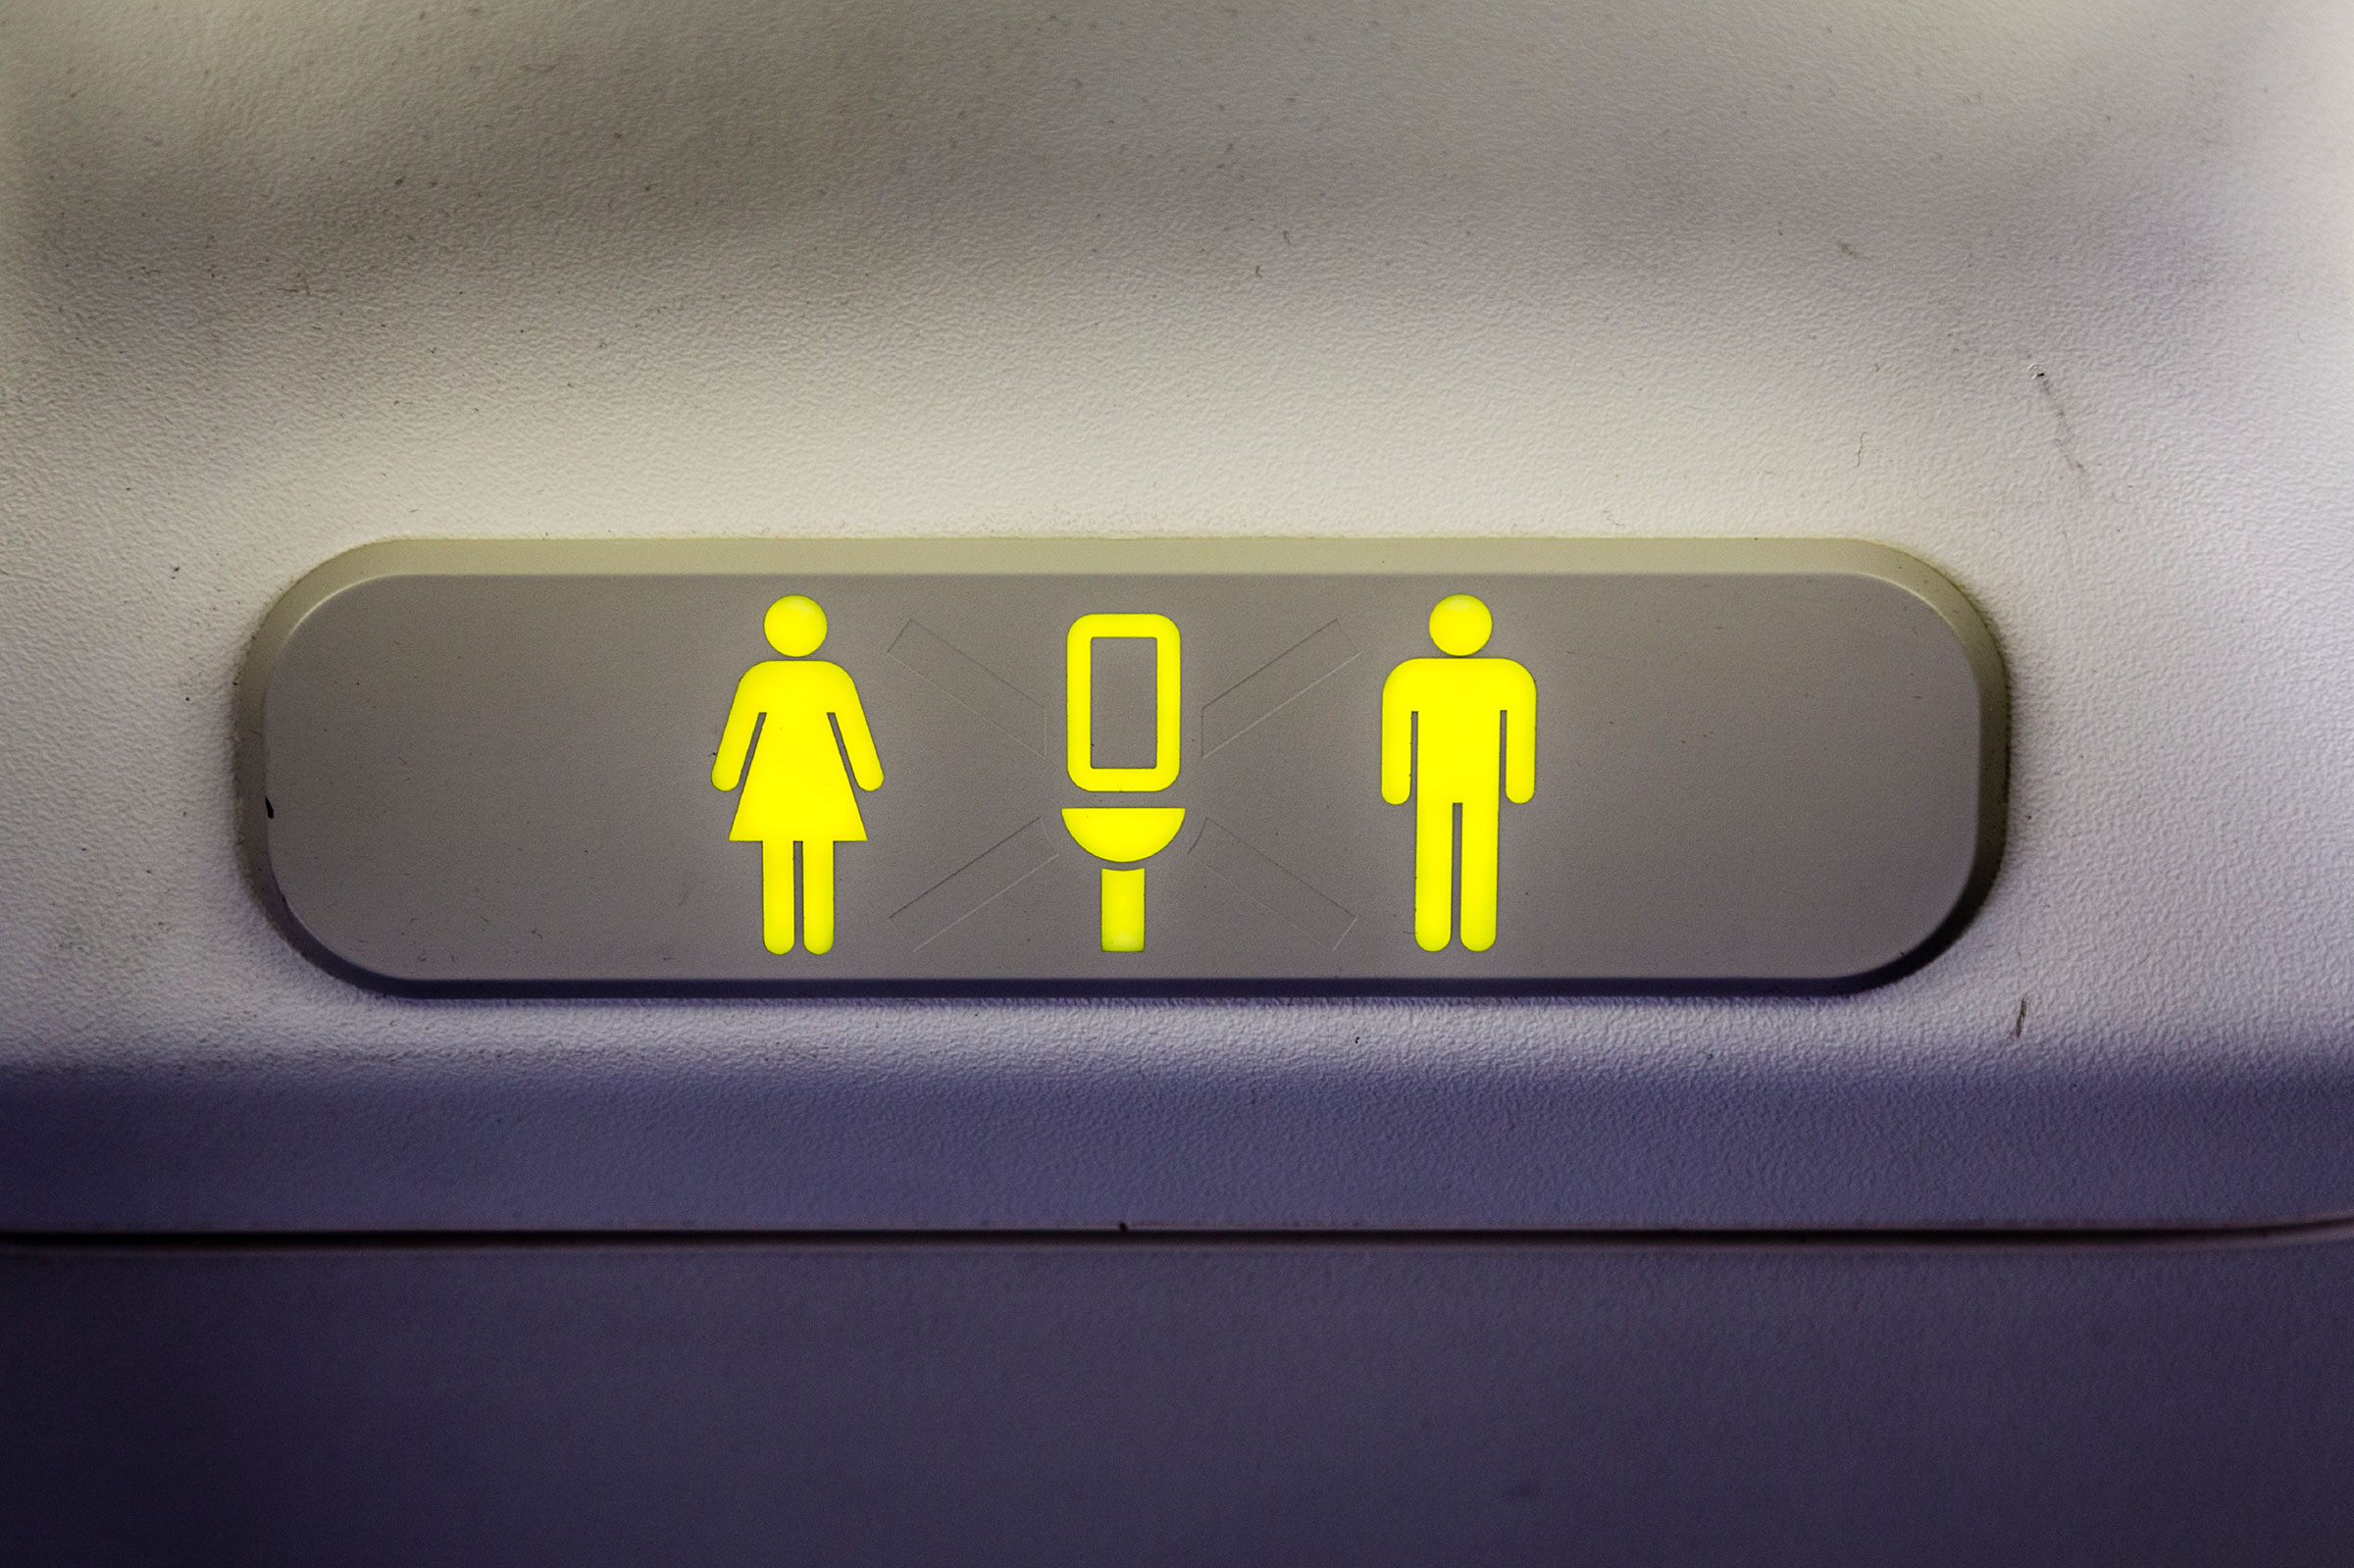 Flight Carrying 85 Plumbers U-Turns After Toilet Issues